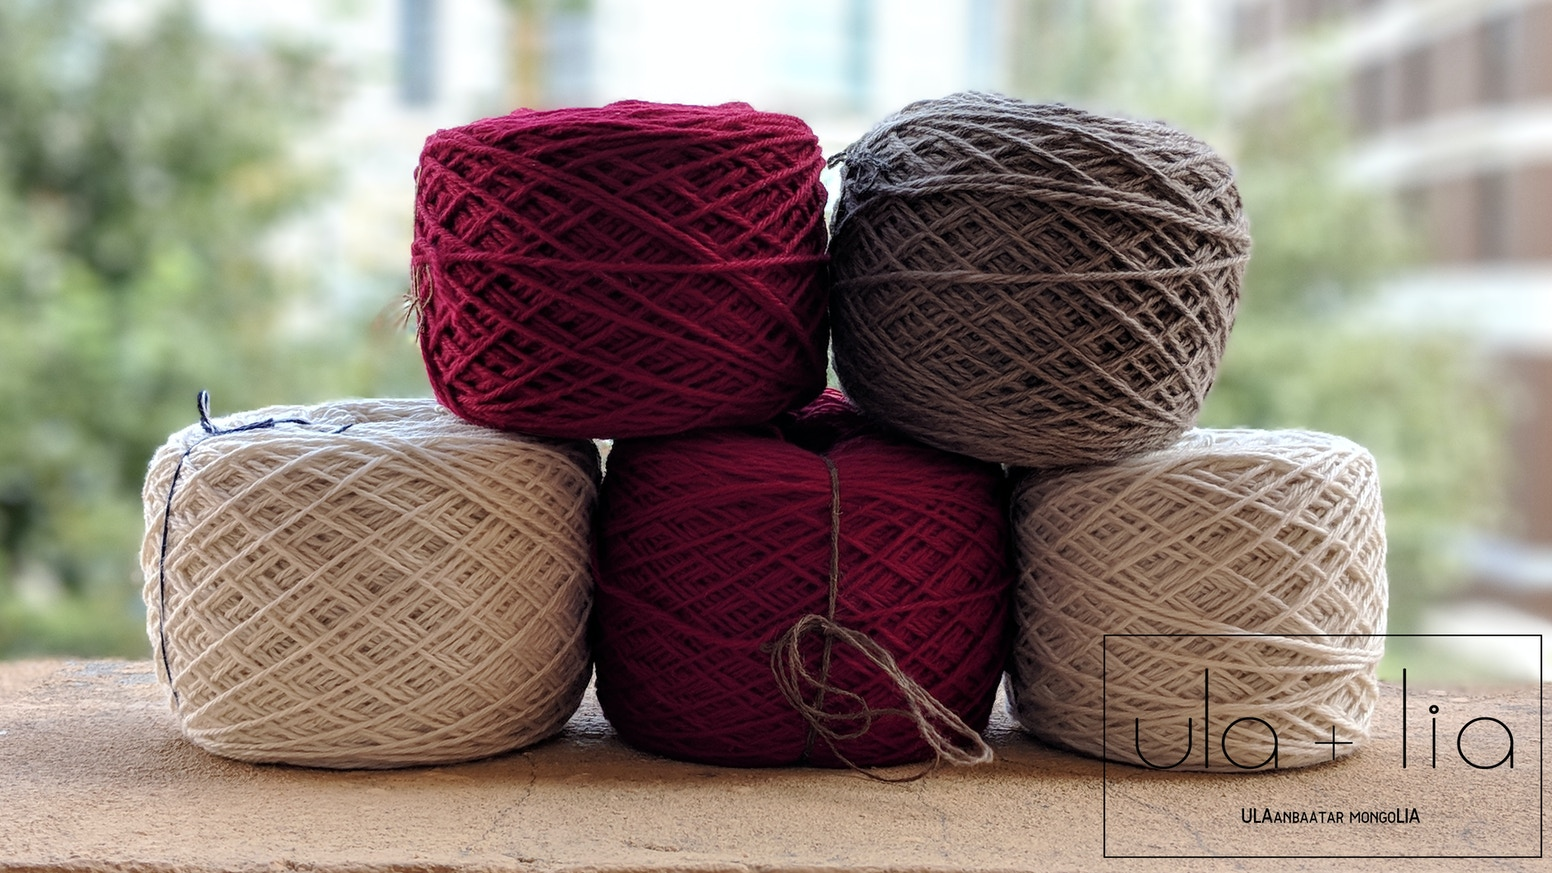 From herders to home, our yarns are made with exotic fibers from nomadic, free-range animals on the remote Mongolian plains. Still want in? Follow the link to the pre-order store below!